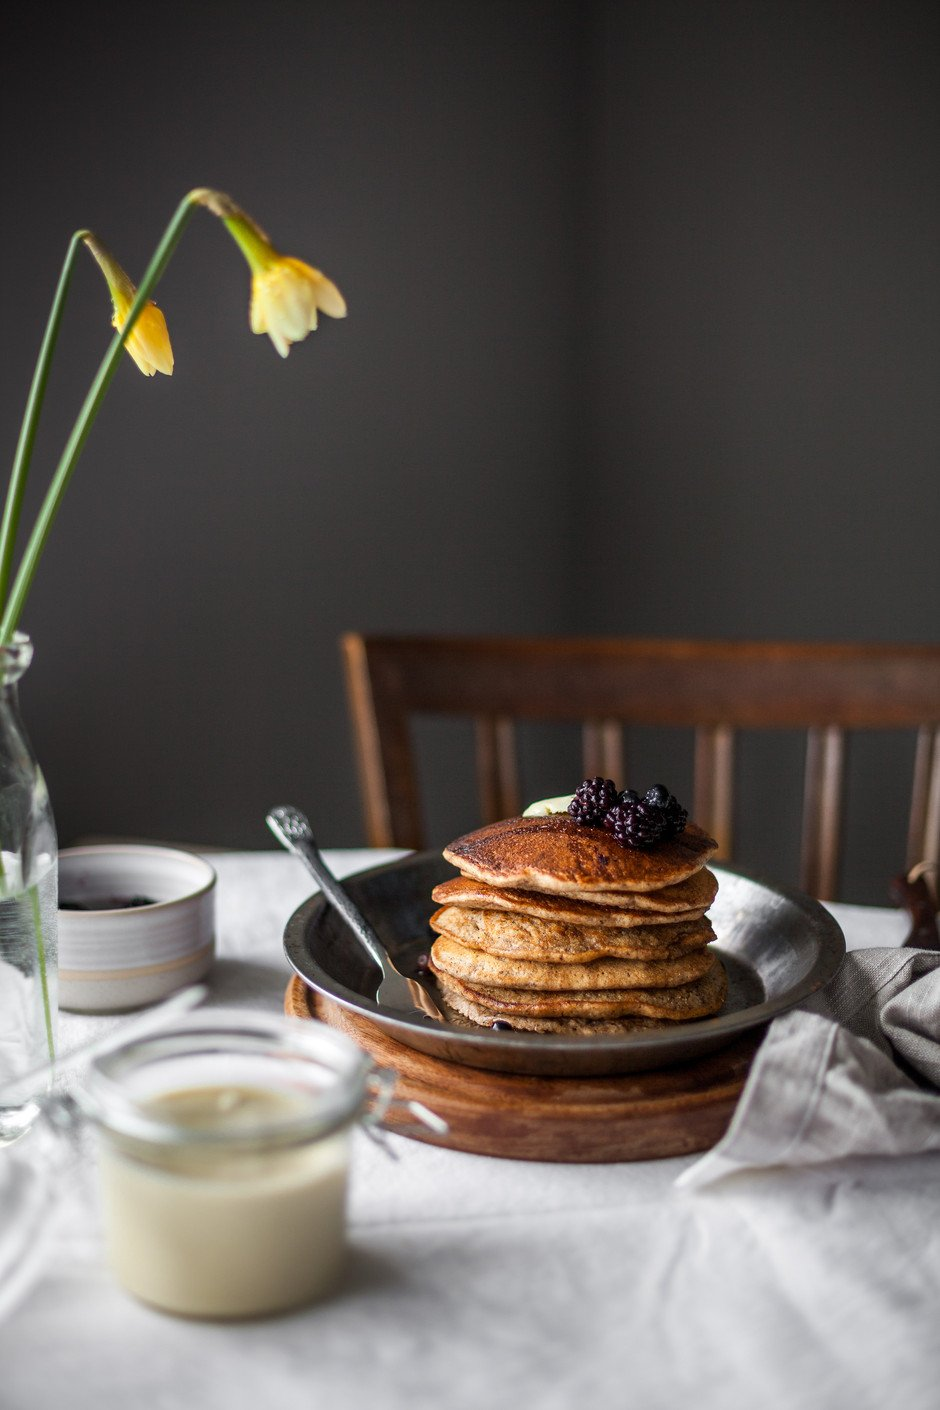 A head on image of a stack of pancakes on a pie plate on a breakfast table with a vase of flowers.